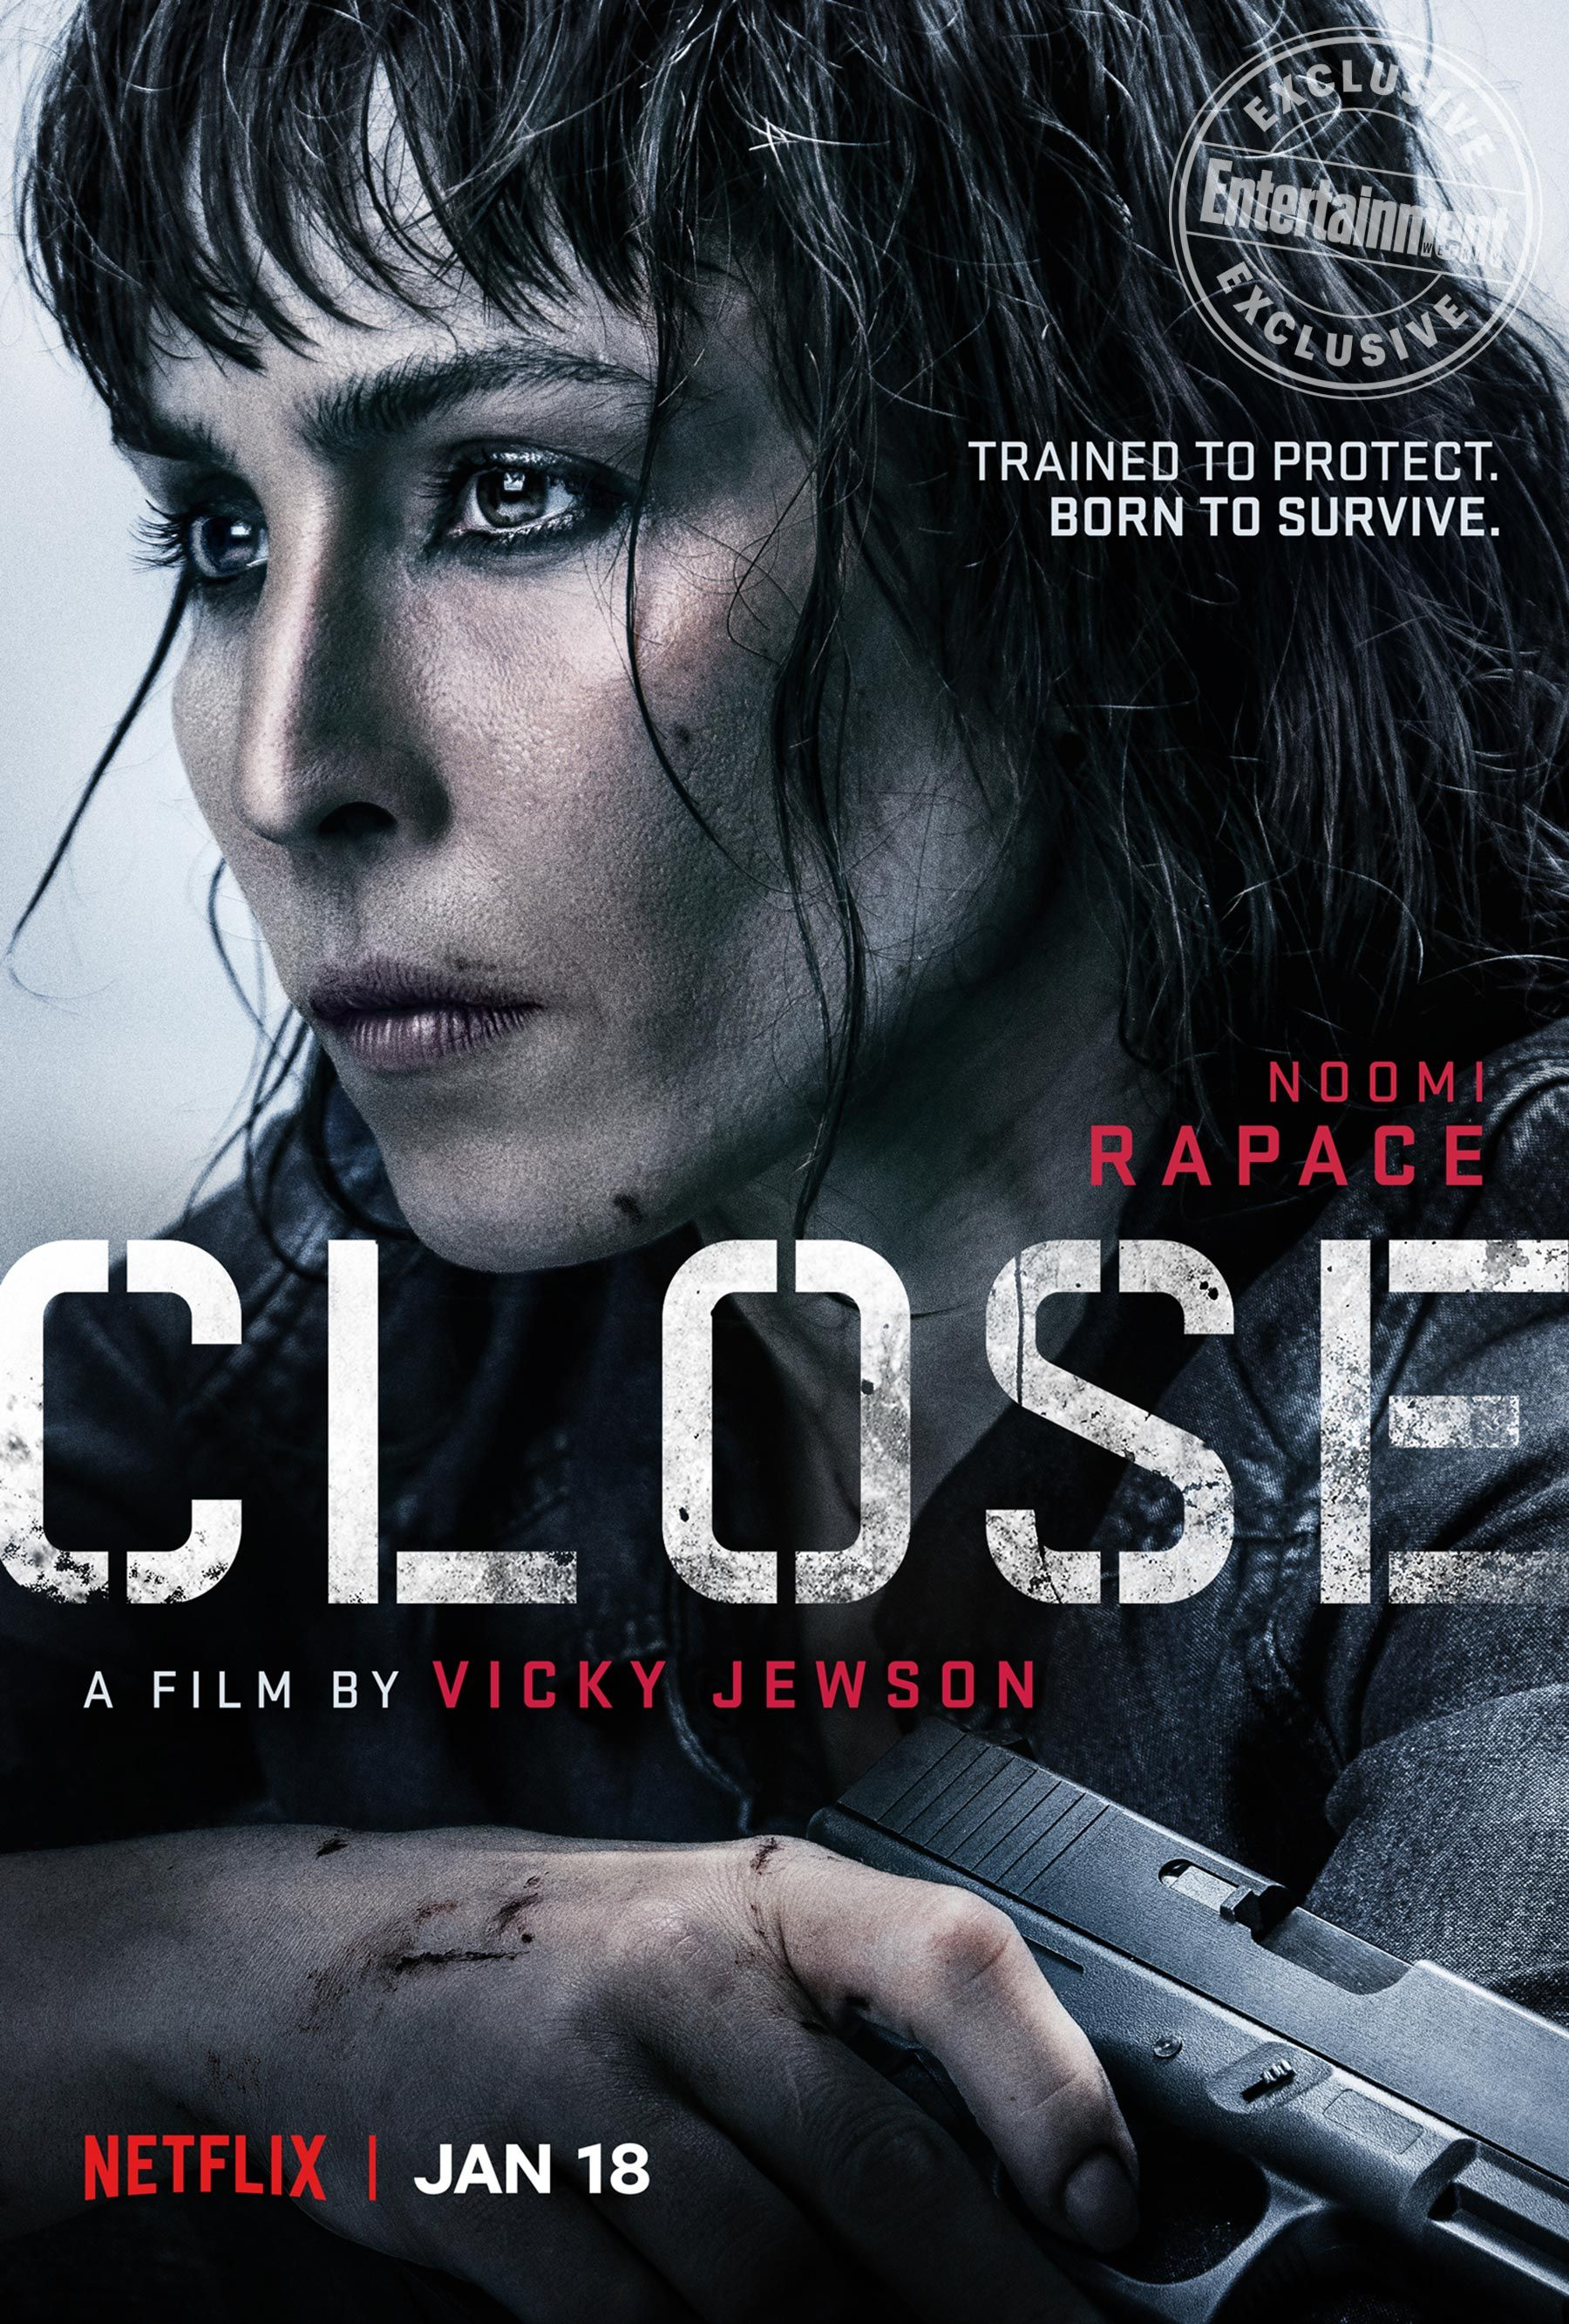 Noomi Rapace Dives Into The World Of Female Bodyguards In Trailer For Netflix Thriller Em Close Em Closer Movie Noomi Rapace Indie Movie Posters